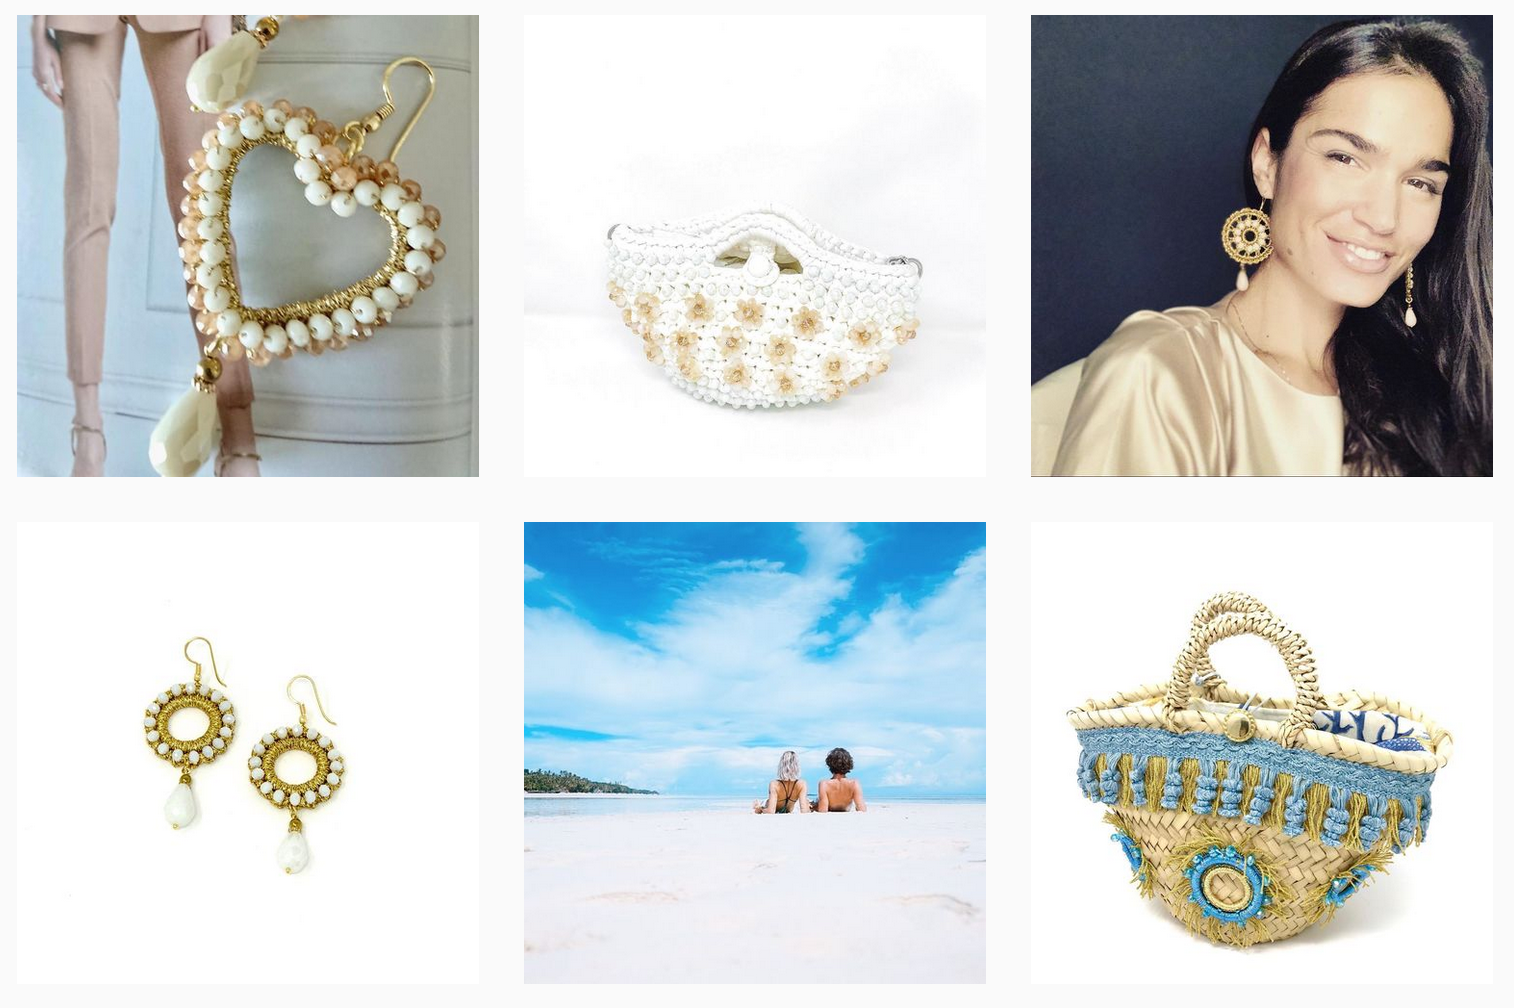 Seekelia | Product Image Gallery | Top Jewelry Brands Featured on Afluencer